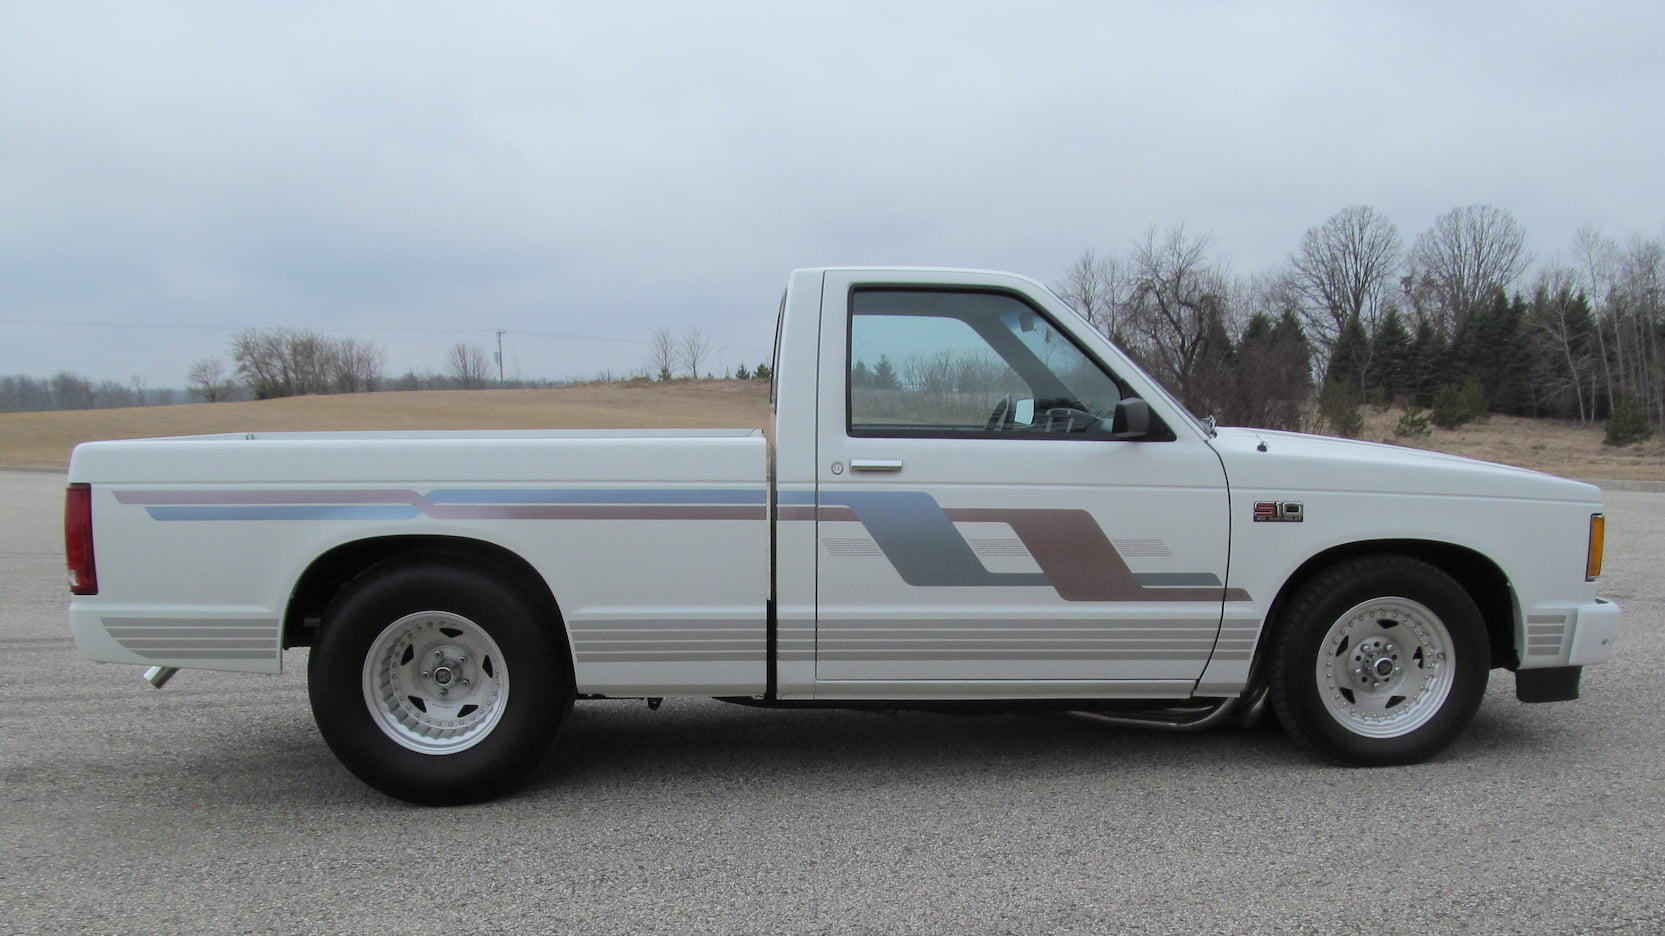 1987 Chevrolet S10 side profile